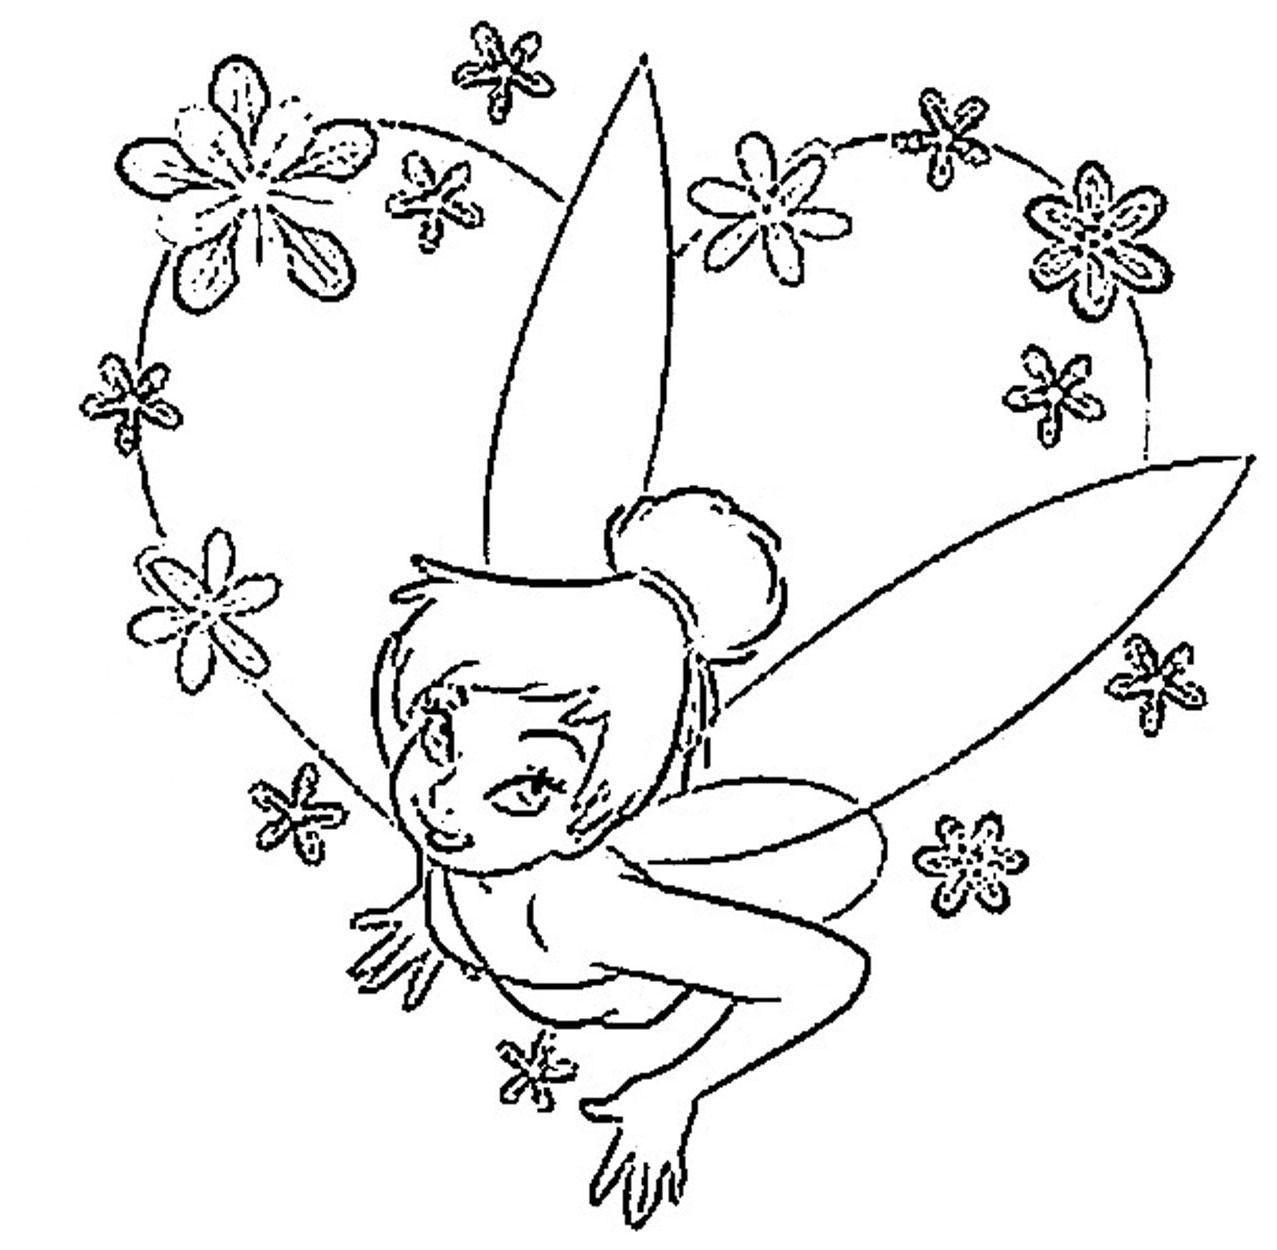 tinkerbell printable coloring pages - photo#18